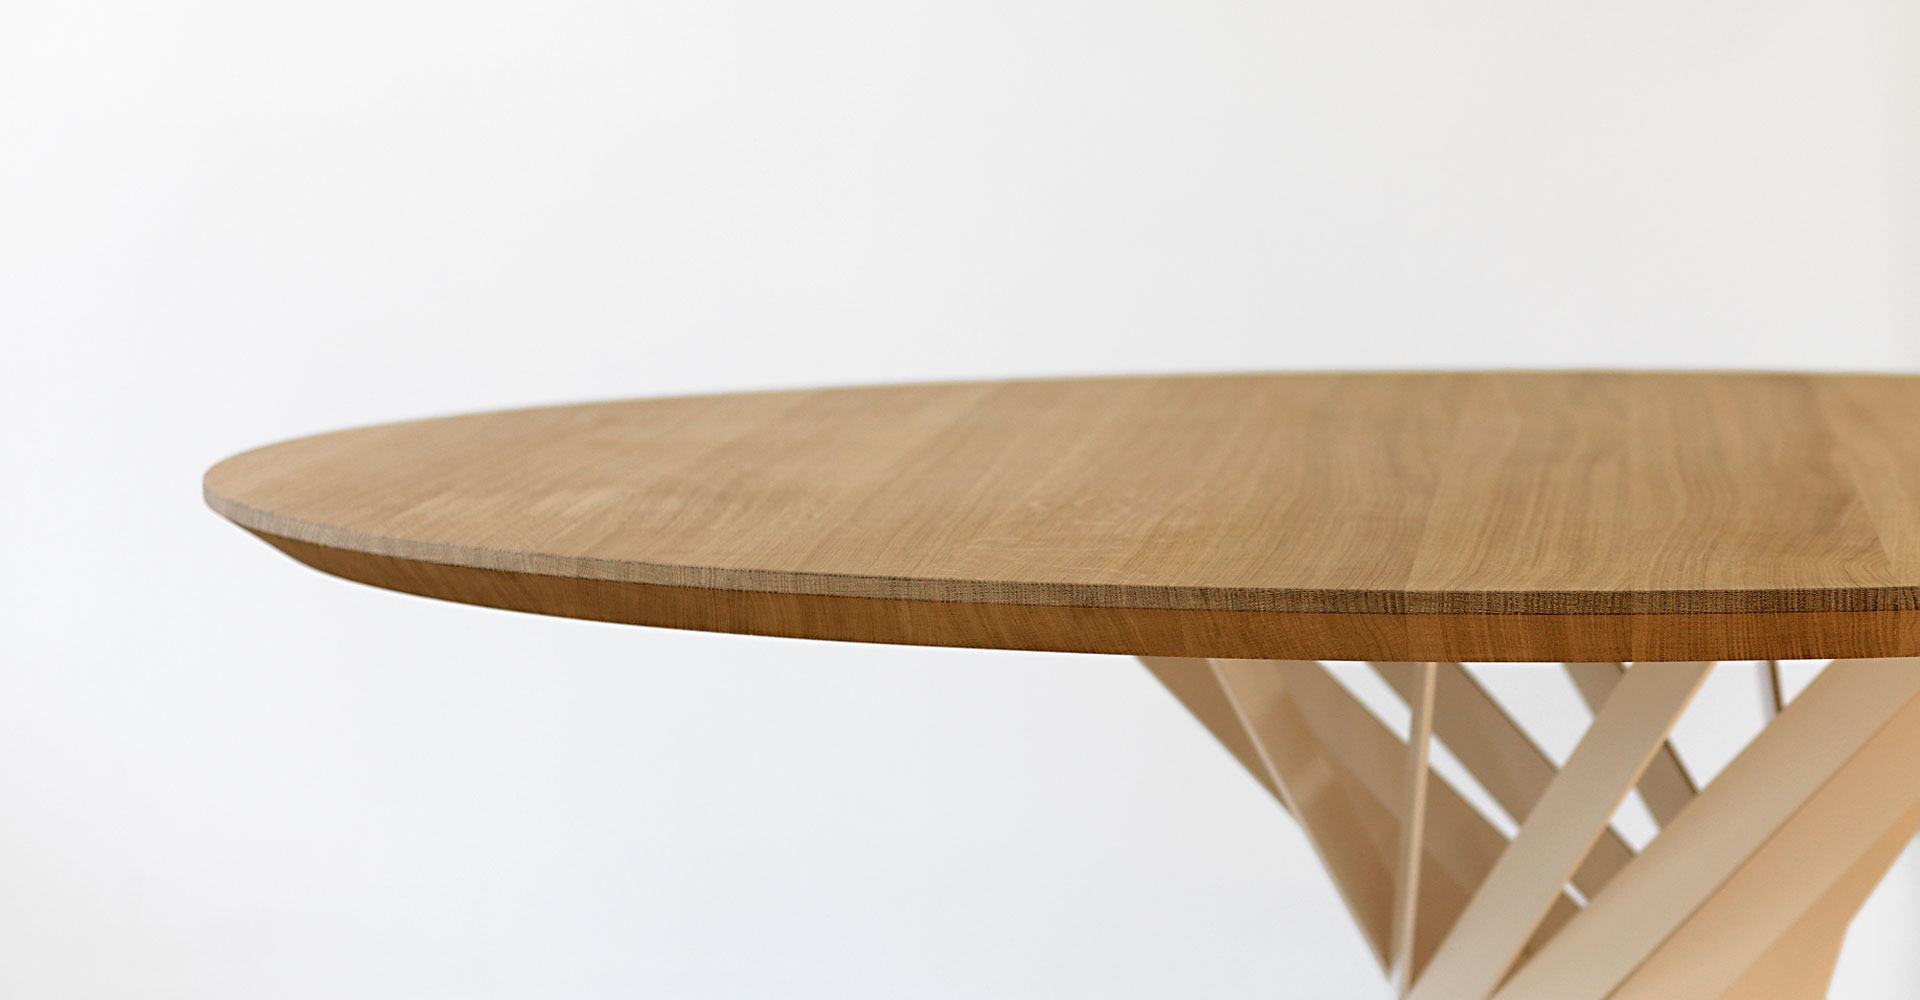 benoit-deneufbourg_twist-table_00